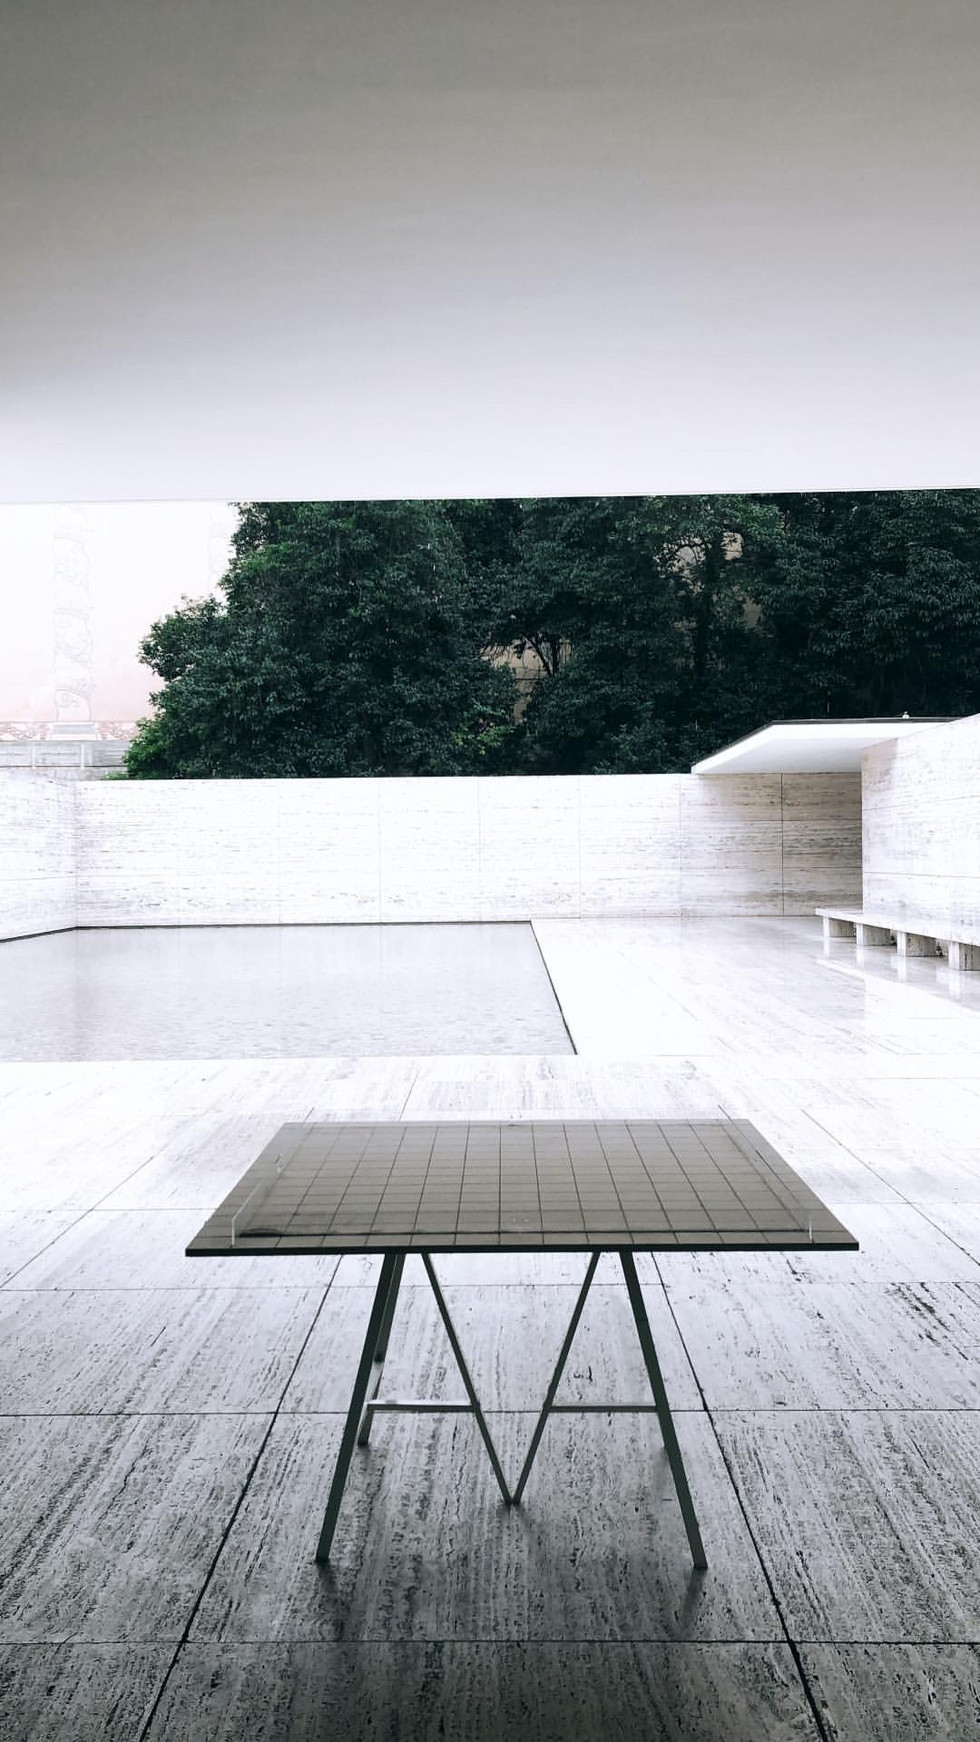 Our exhibition at Mies van der Rohe's Barcelona Pavilion